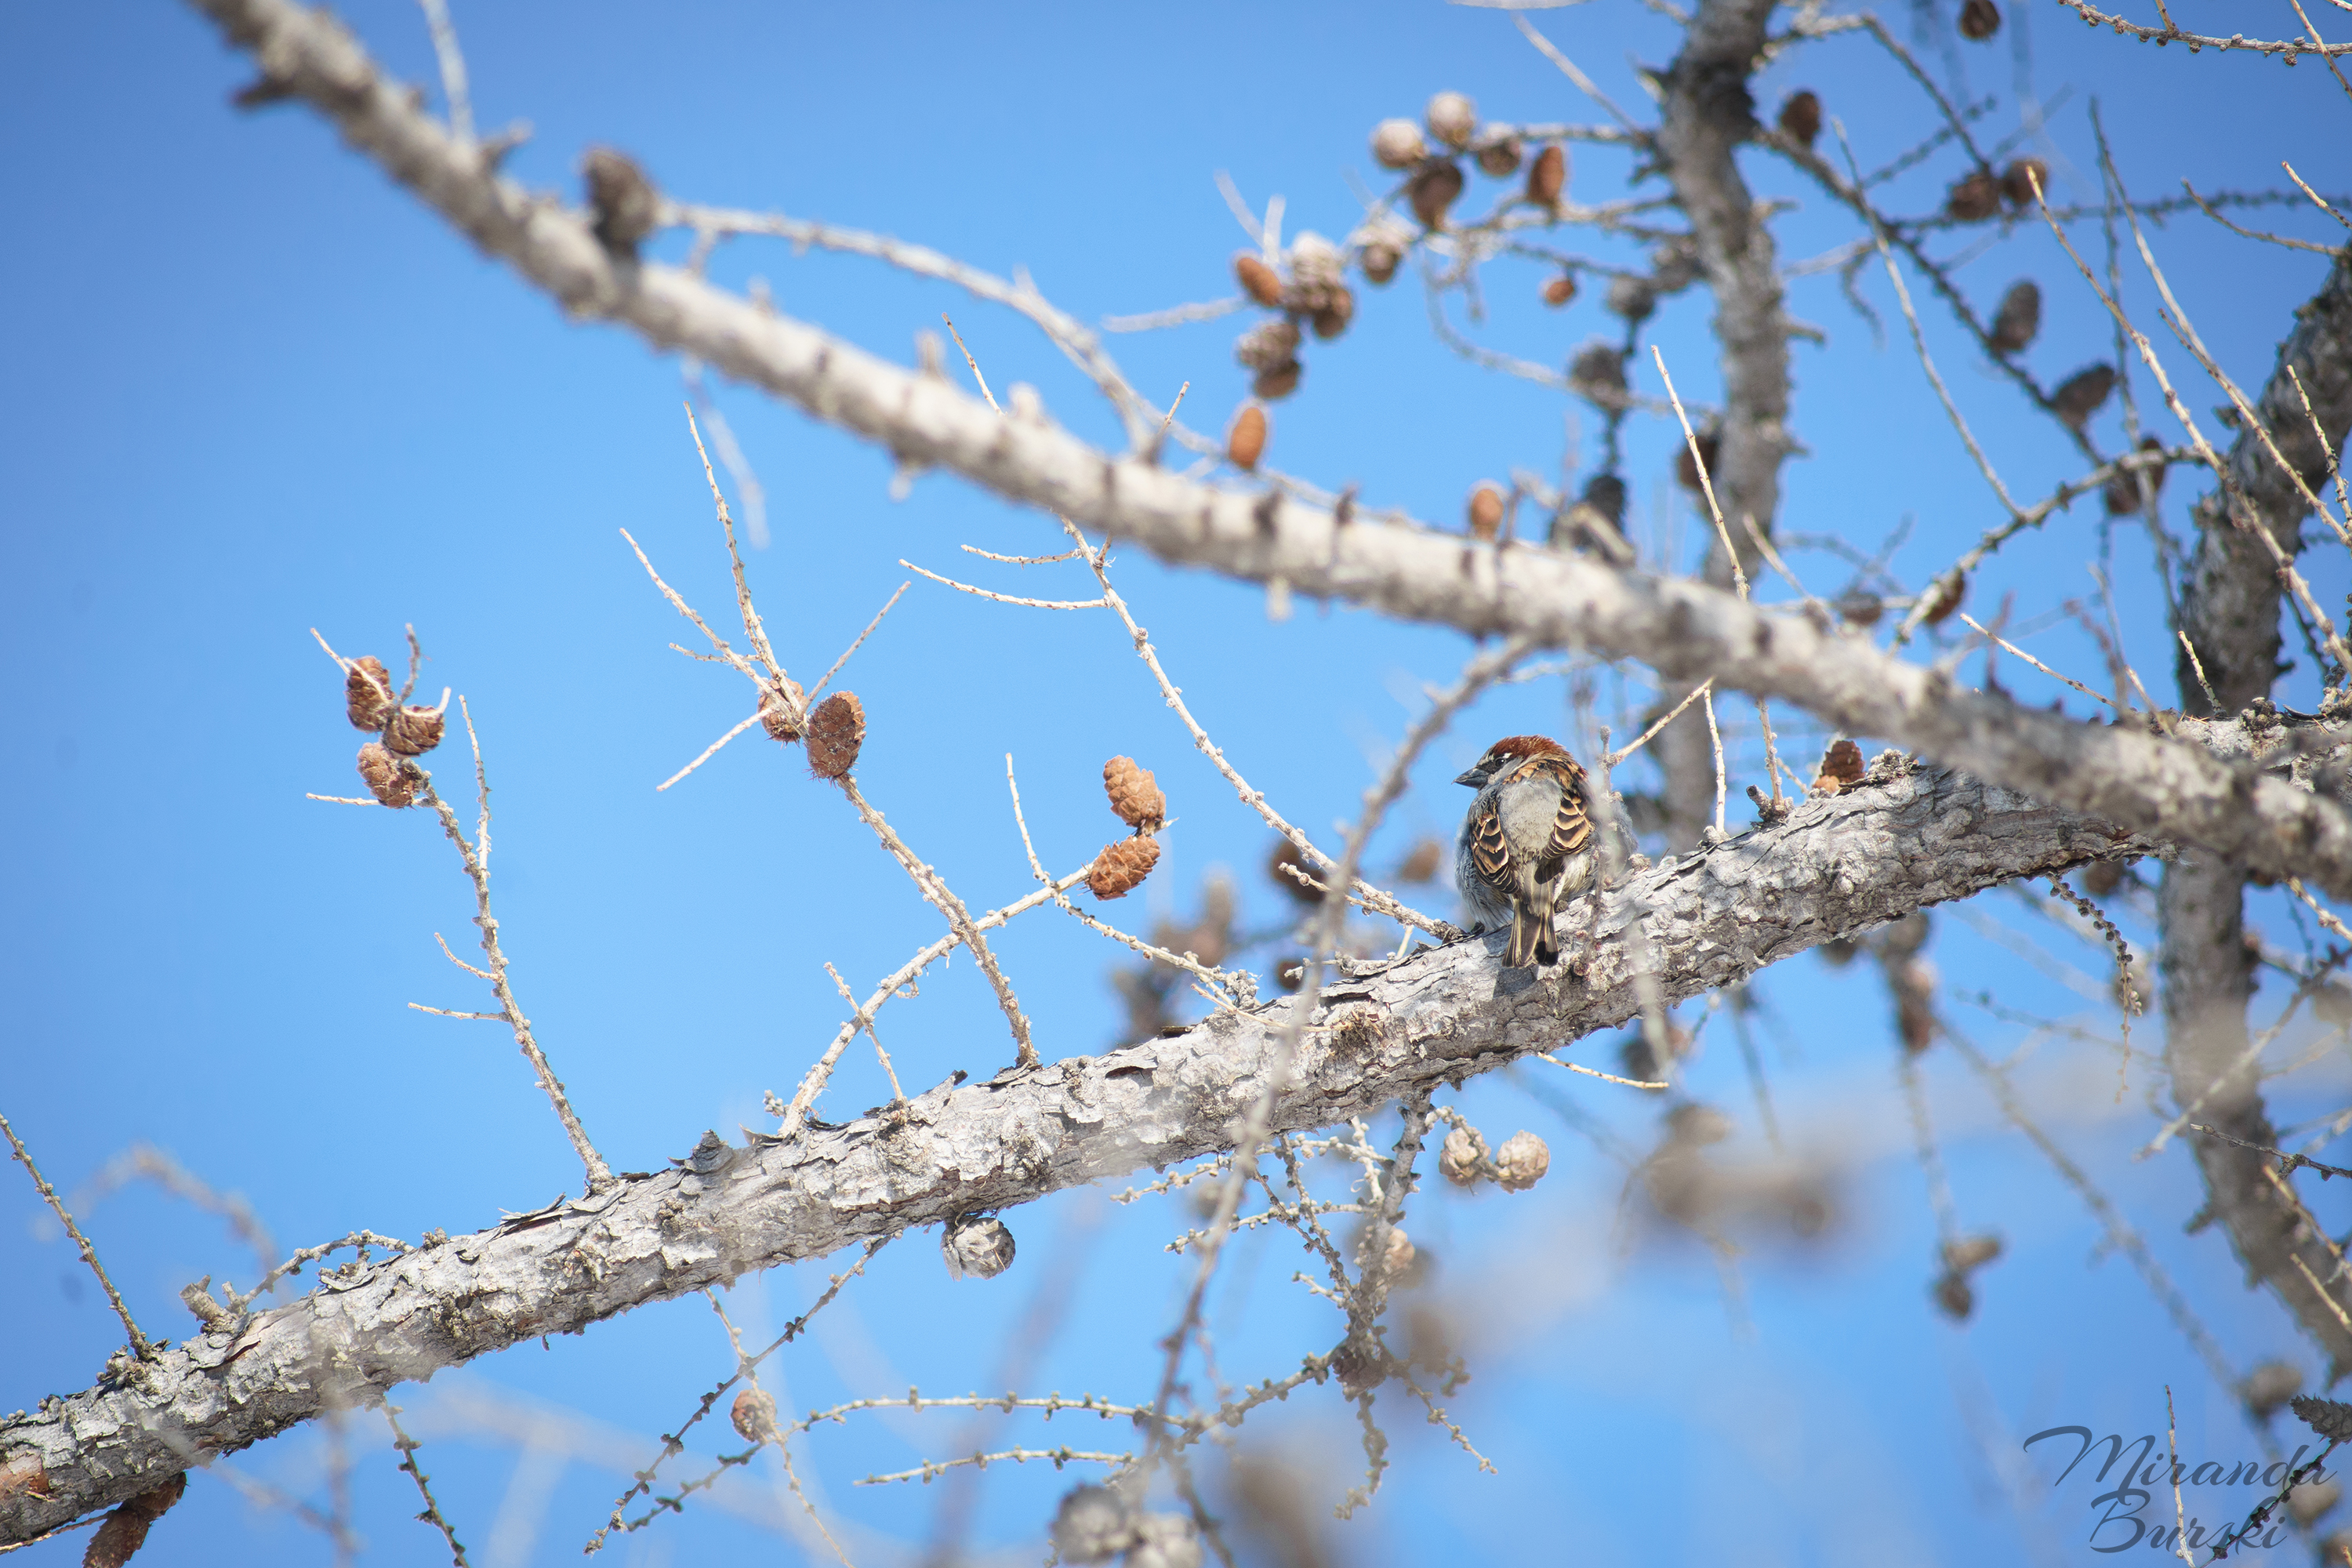 A small bird sitting on the branches of a tree.